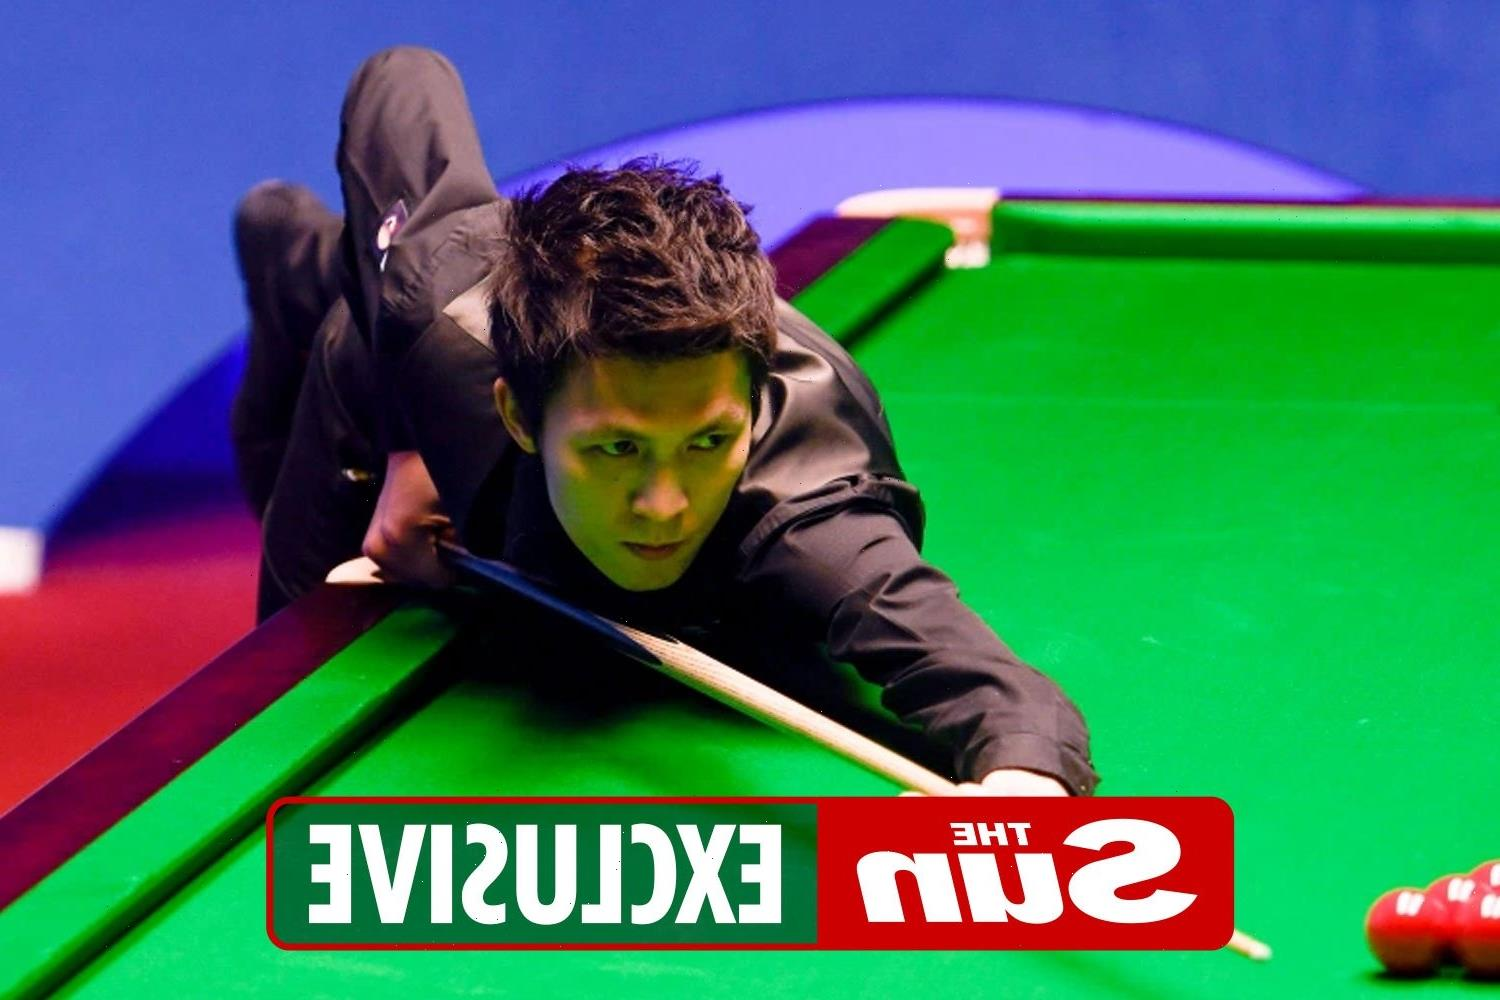 Snooker player makes history by racking up a remarkable break of 155